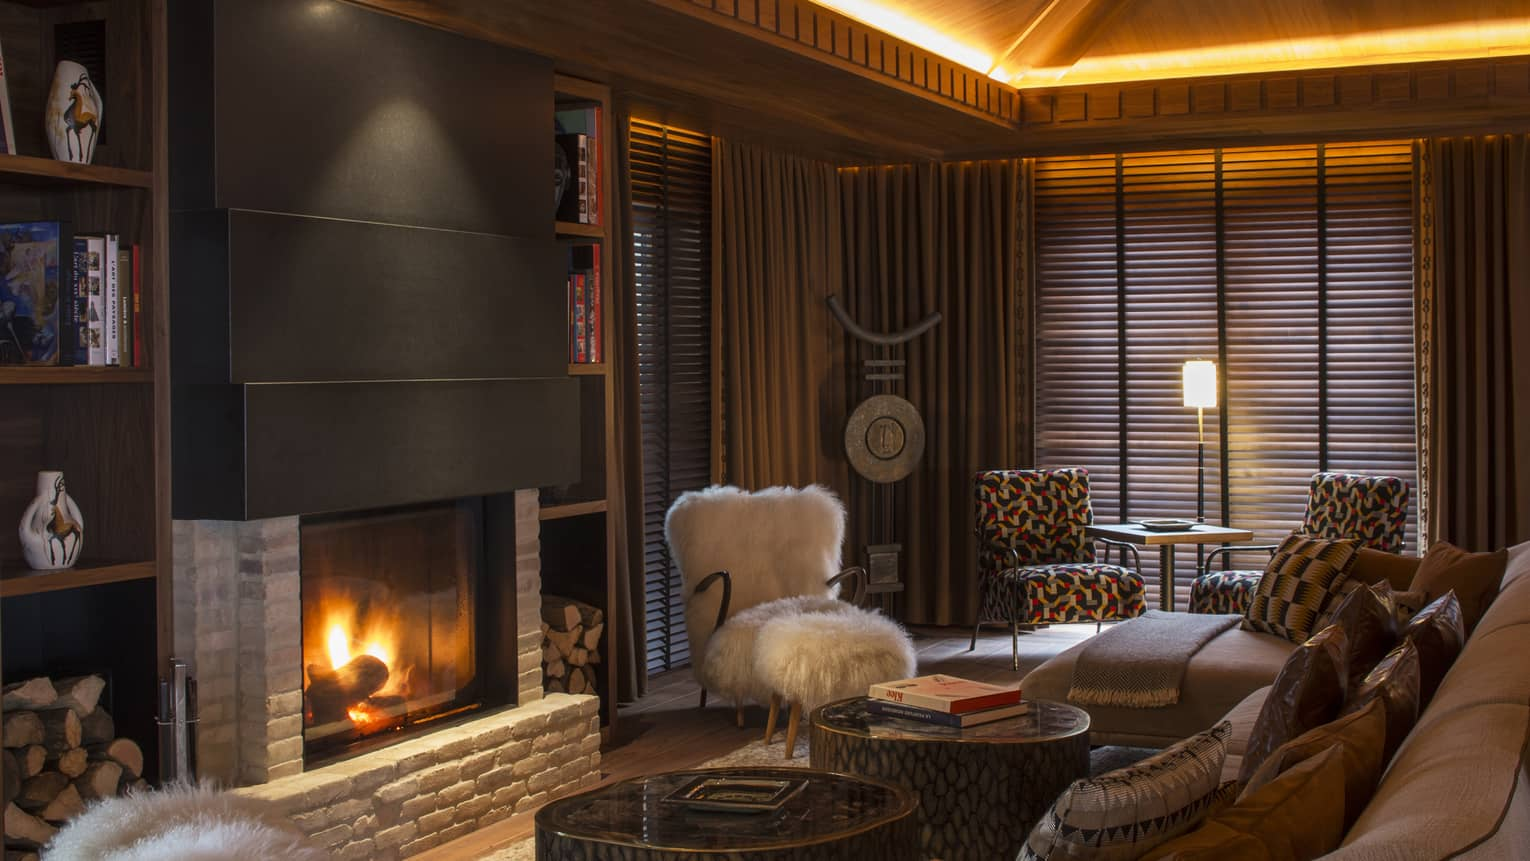 Large fireplace with stone and wood detail in cosy Lobby Lounge with brown tones